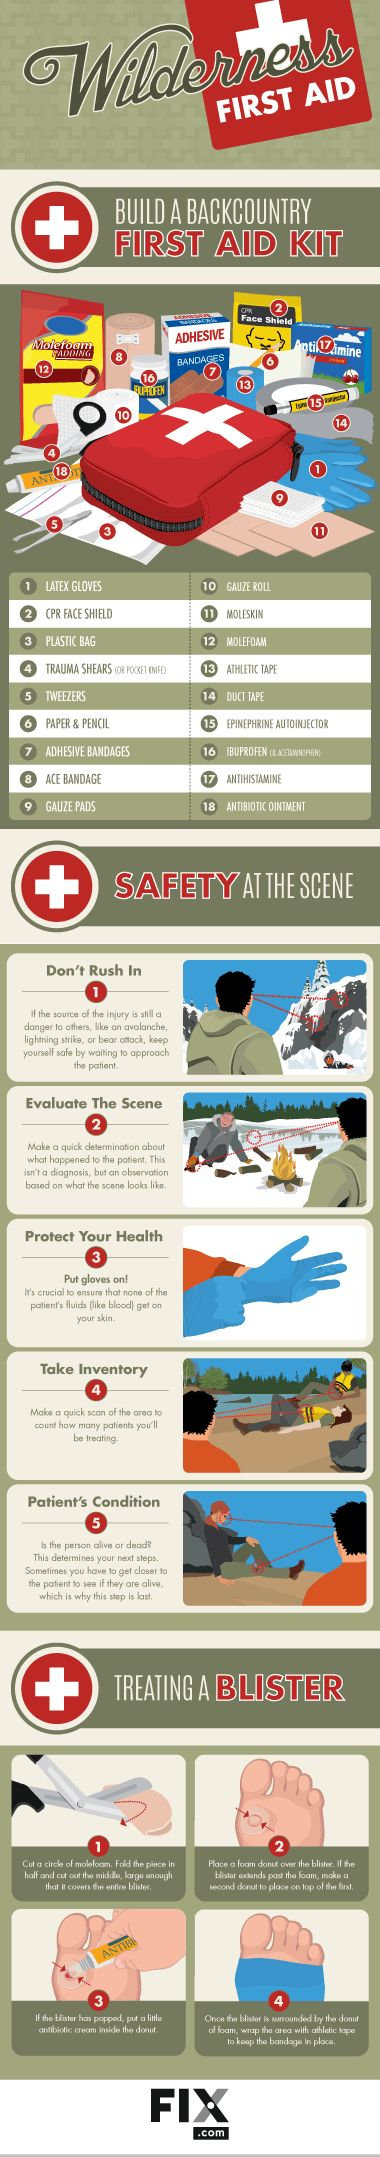 Learn where you can get certified for first aid before a trip to the back country.